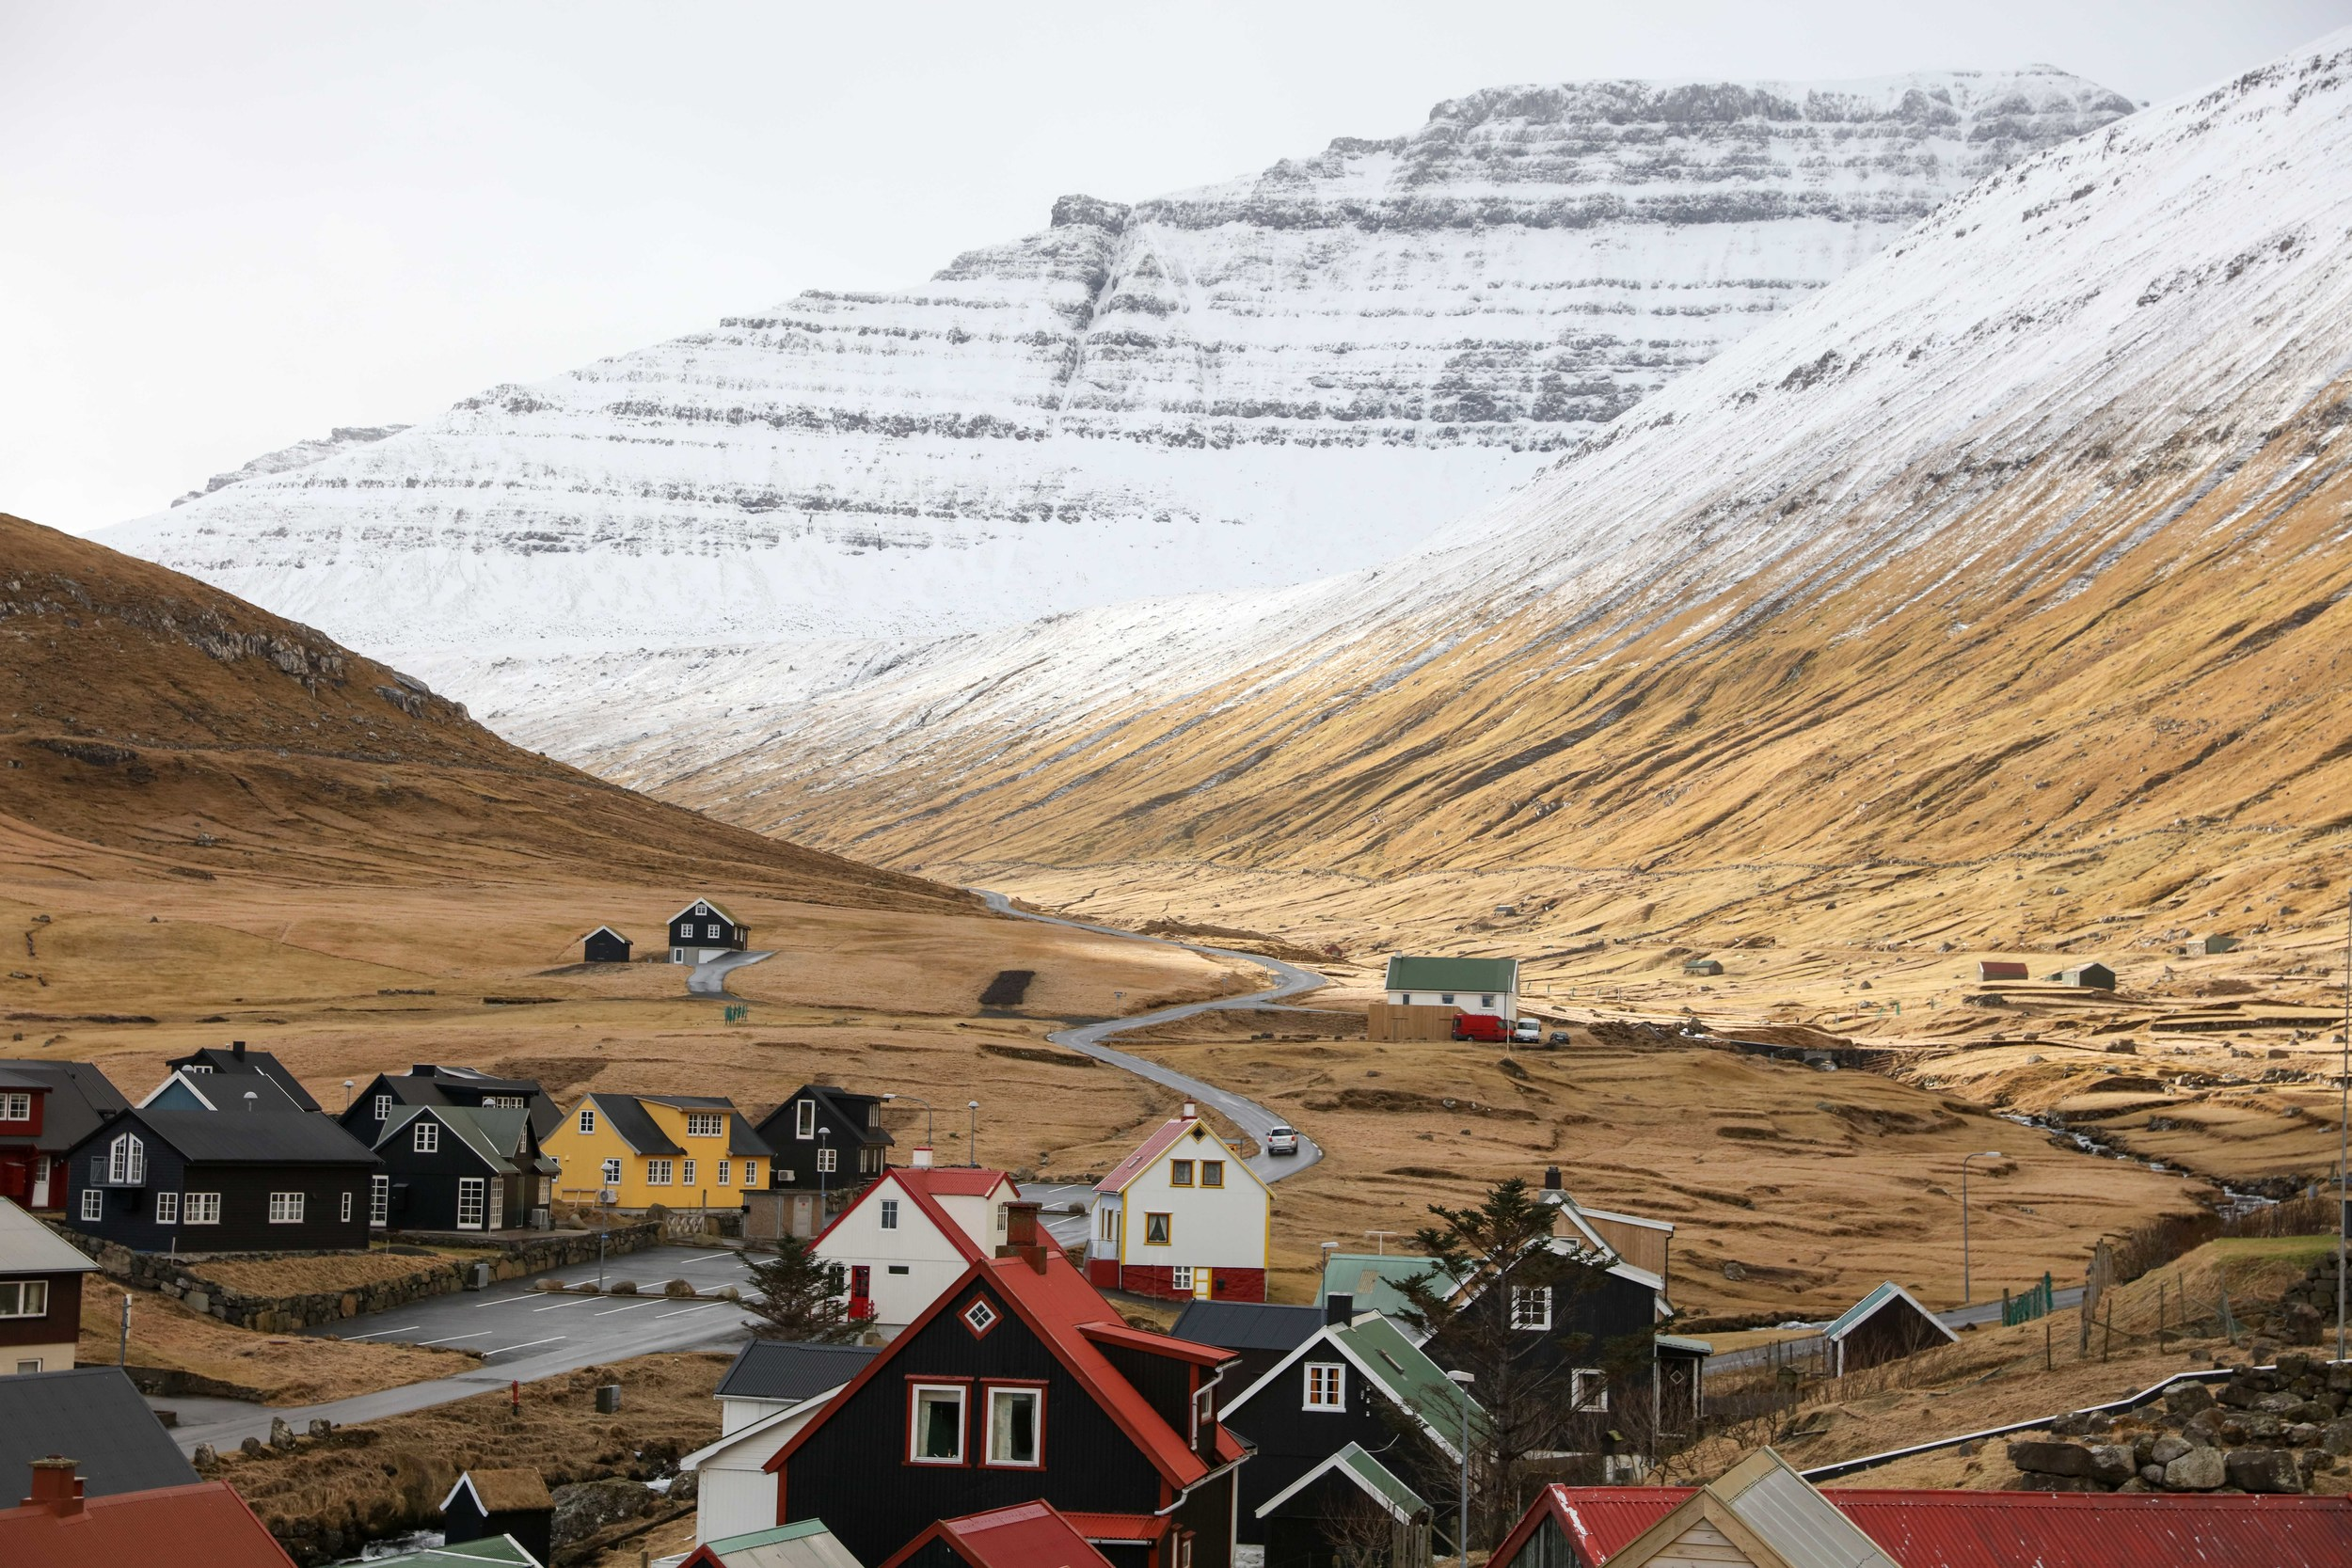 A typical village in Faroe Island, just gorgeous